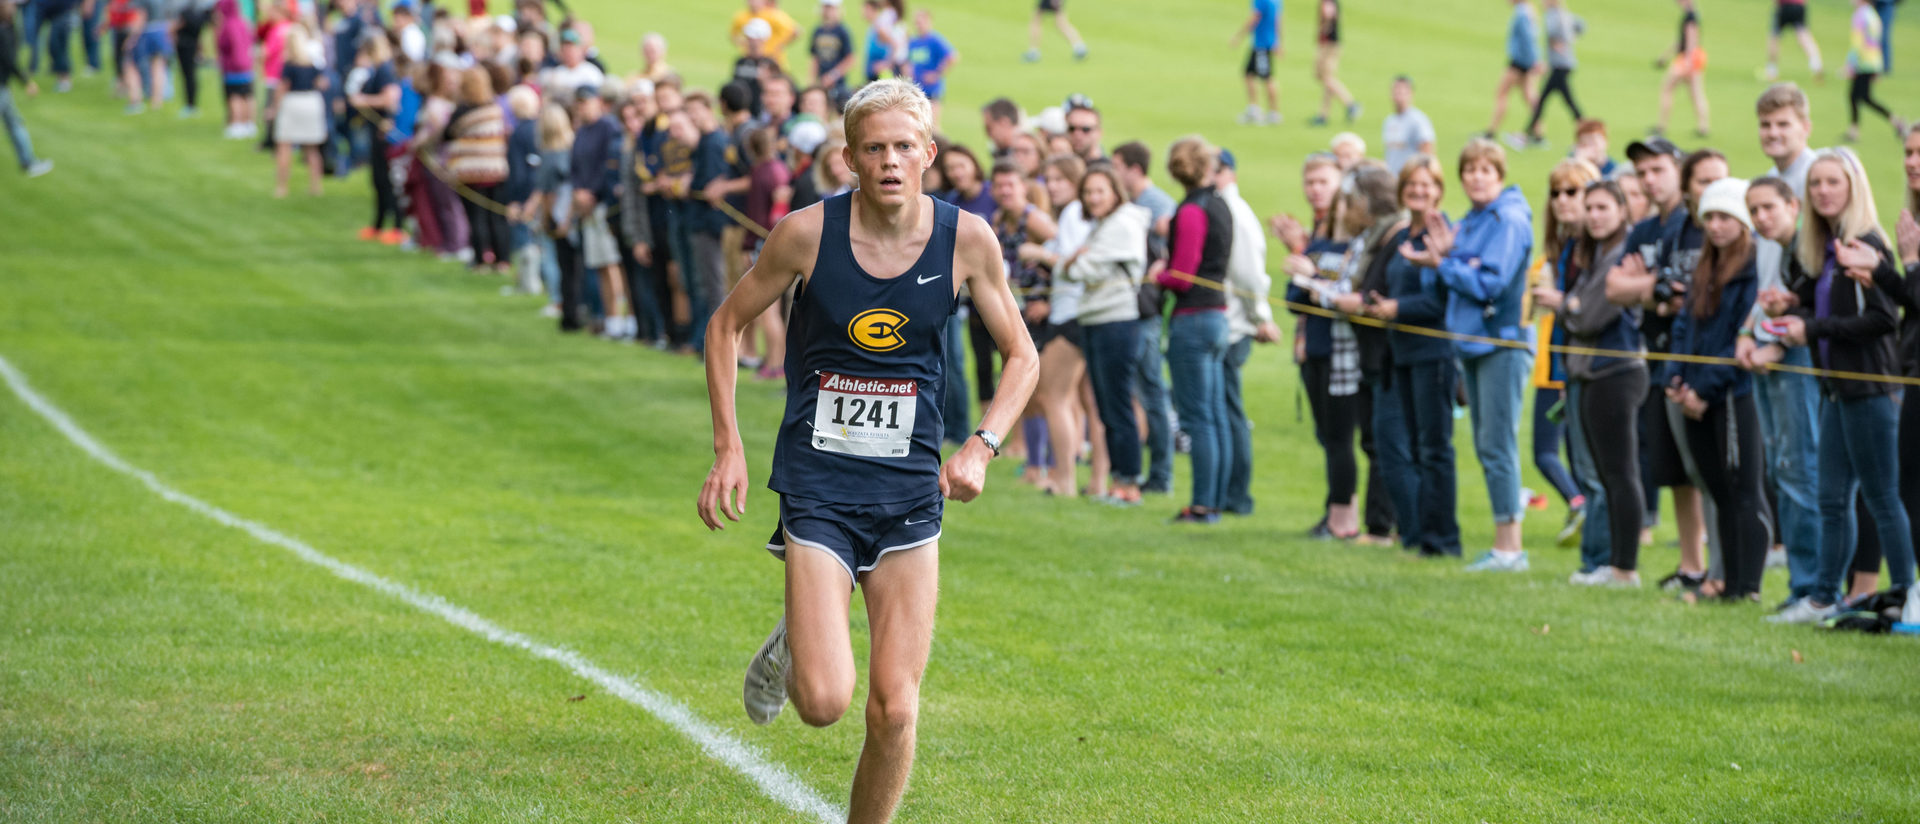 Darin Lau runs during fall 2017 cross-country meet